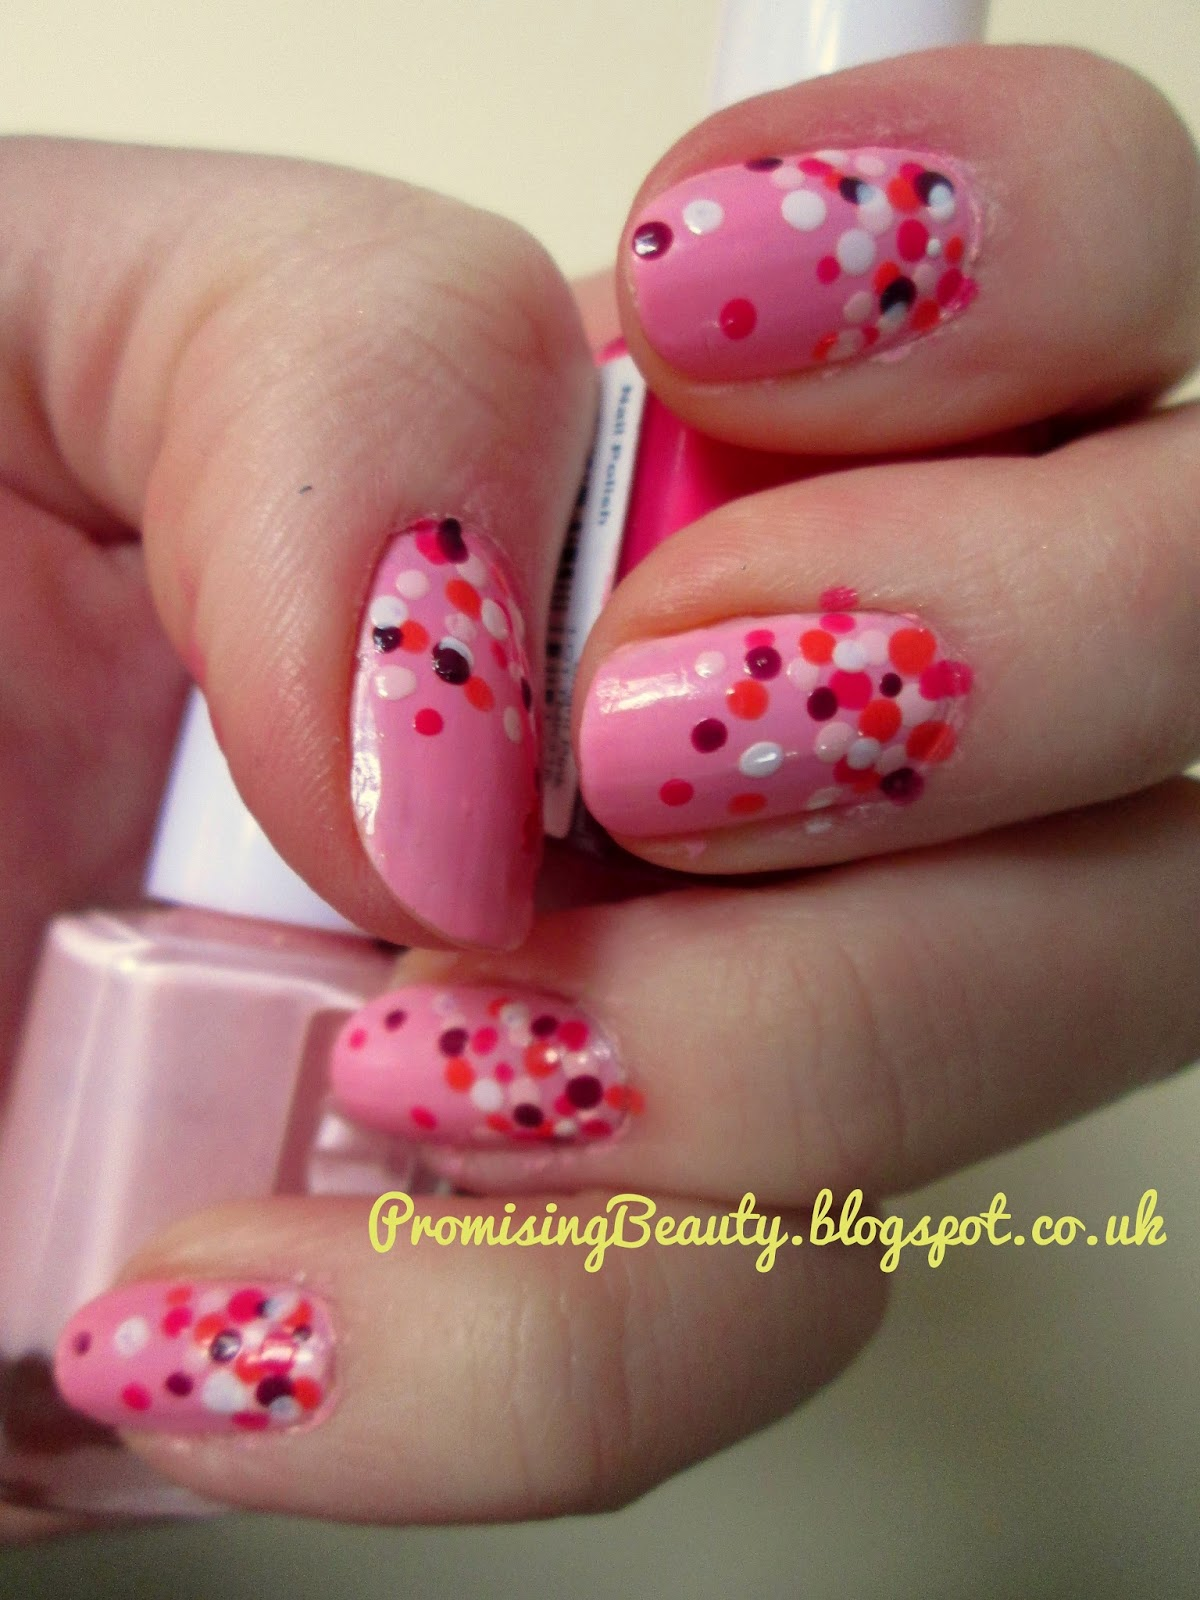 Promising Beauty Manicure Time Spots And Polka Dots Easy Nail Art